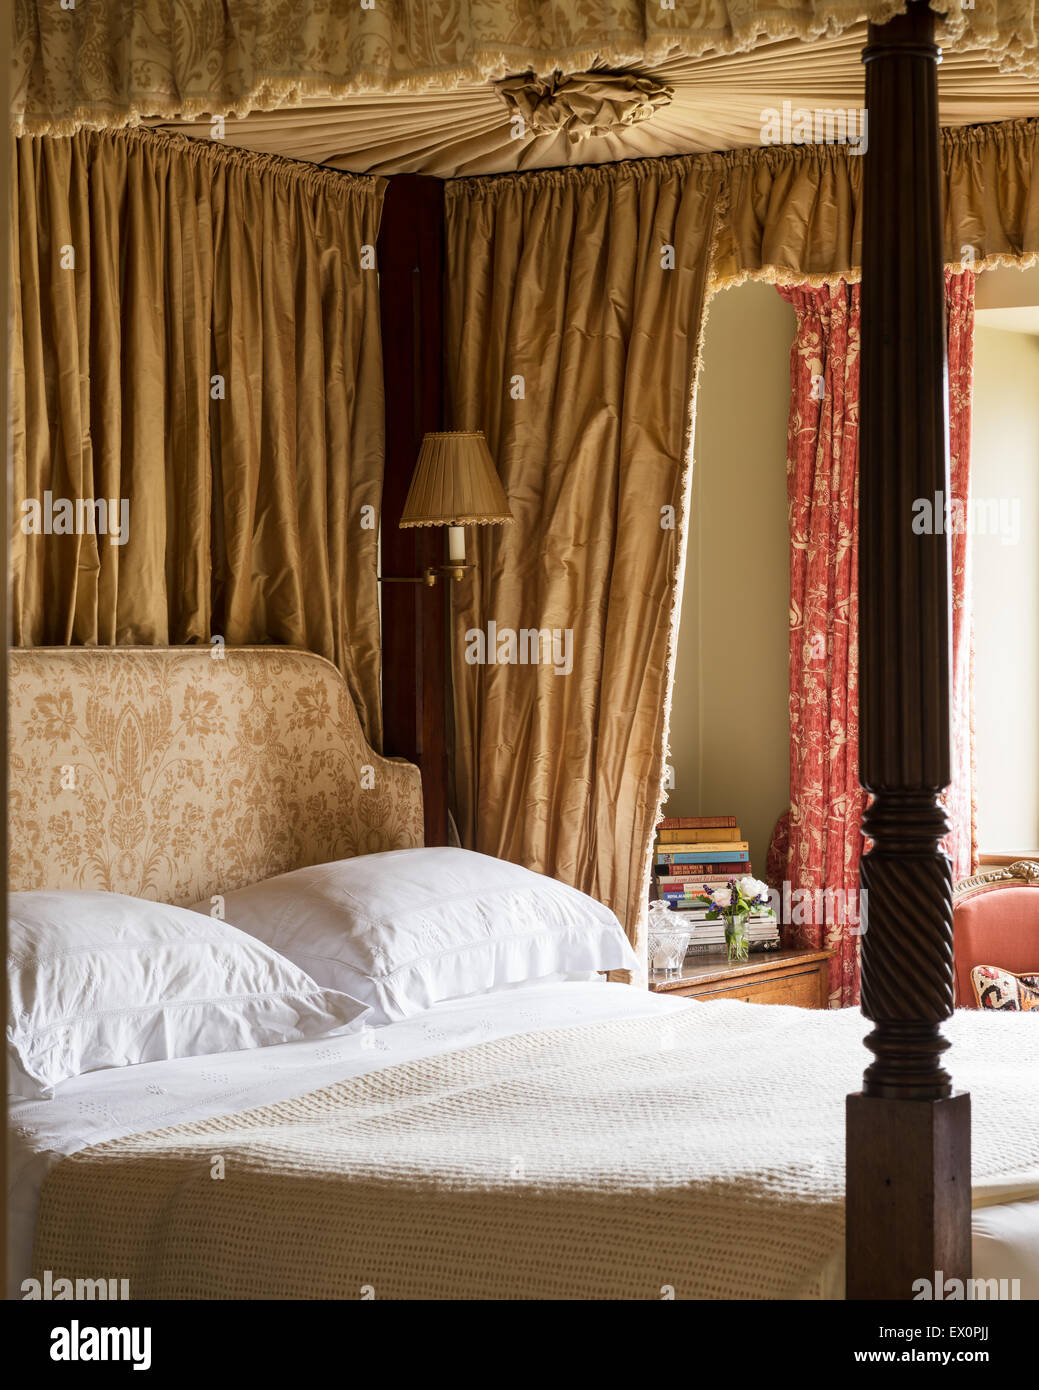 Georgian four poster bed in bedroom with toile de jouy